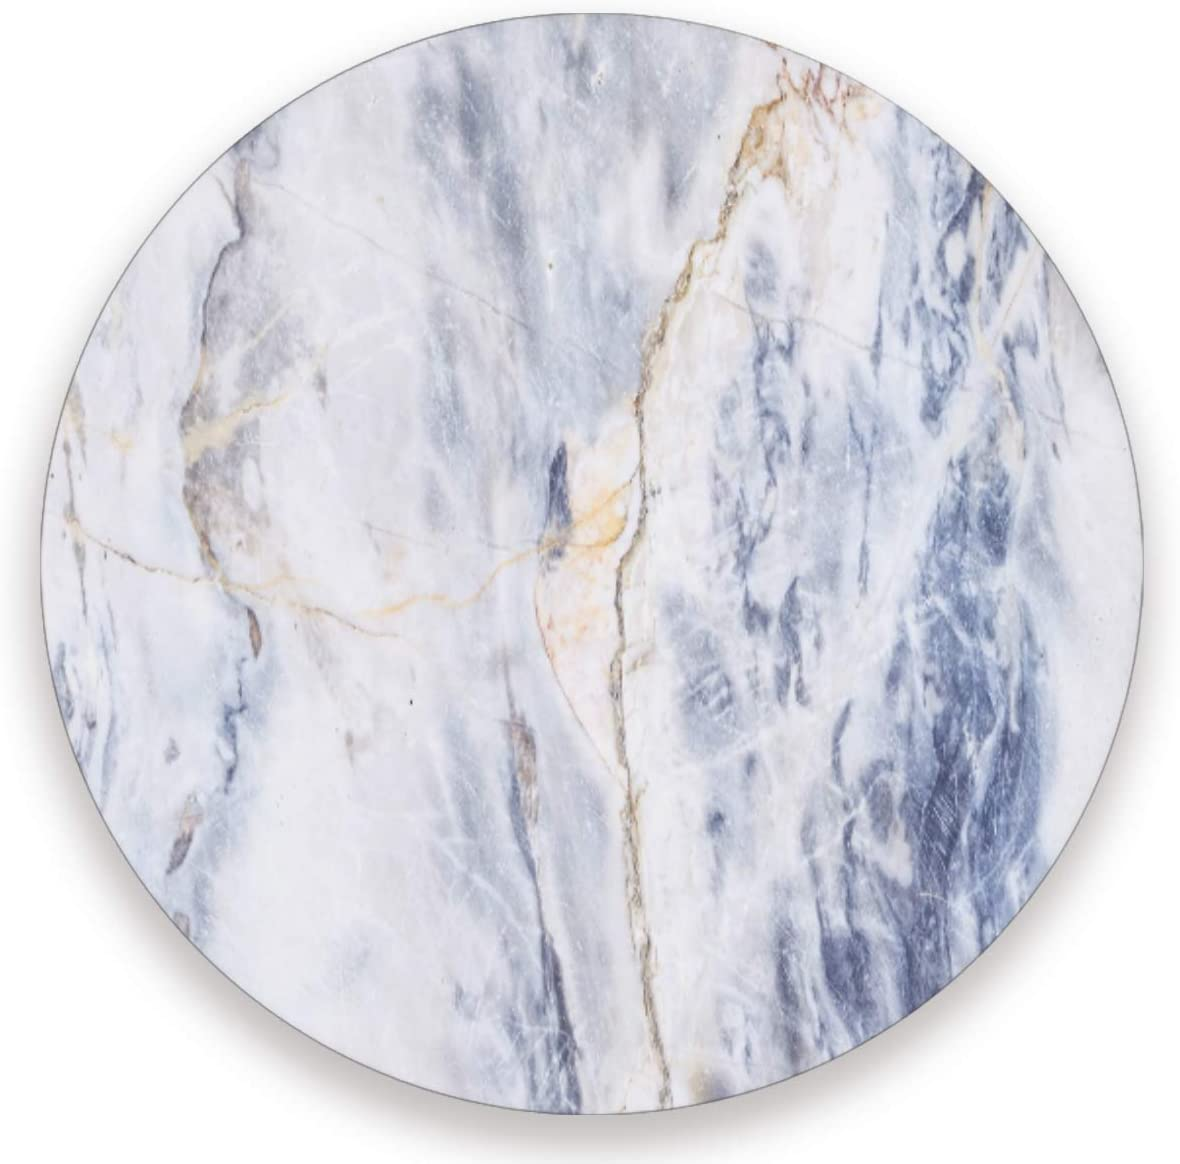 Olinyou Pale Blue Marble White Art Coaster for Drinks 1 Pieces Absorbent Ceramic Stone Coasters with Cork Base